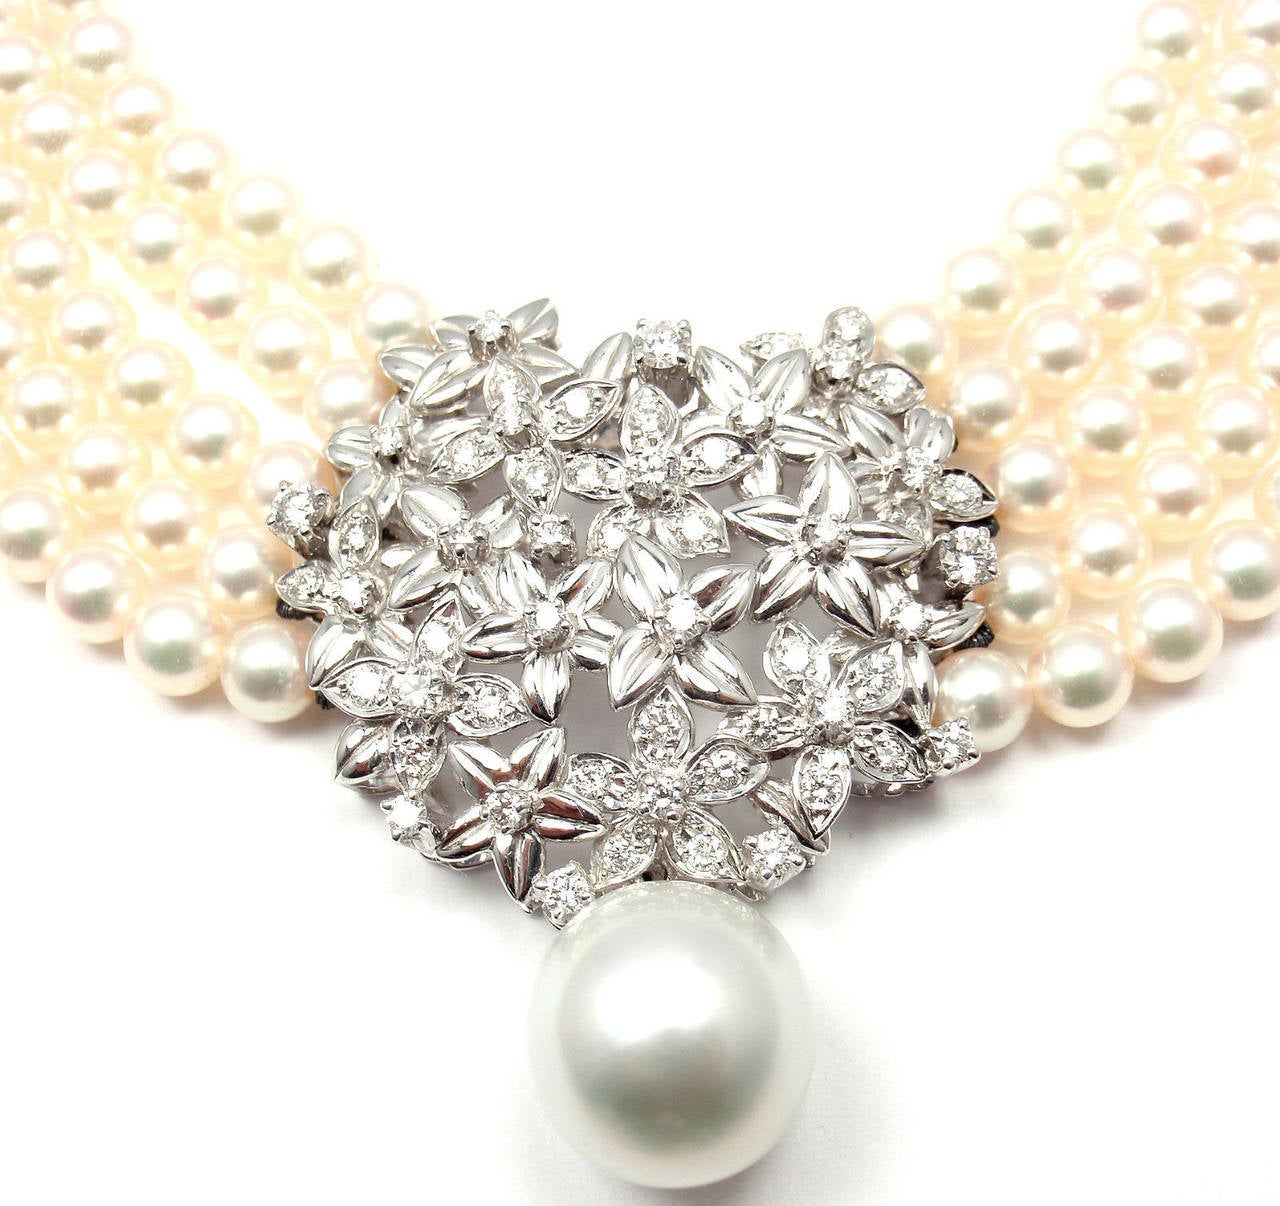 18k White Gold Diamond 5 Strand Pearl Necklace by Mikimoto.  With 700 total 5 mm A quality or better with very good luster. 1 x 13mm Large South Sea Pearl drop. 55 round brilliant cut diamonds VS1 clarity, G color total weight approx.